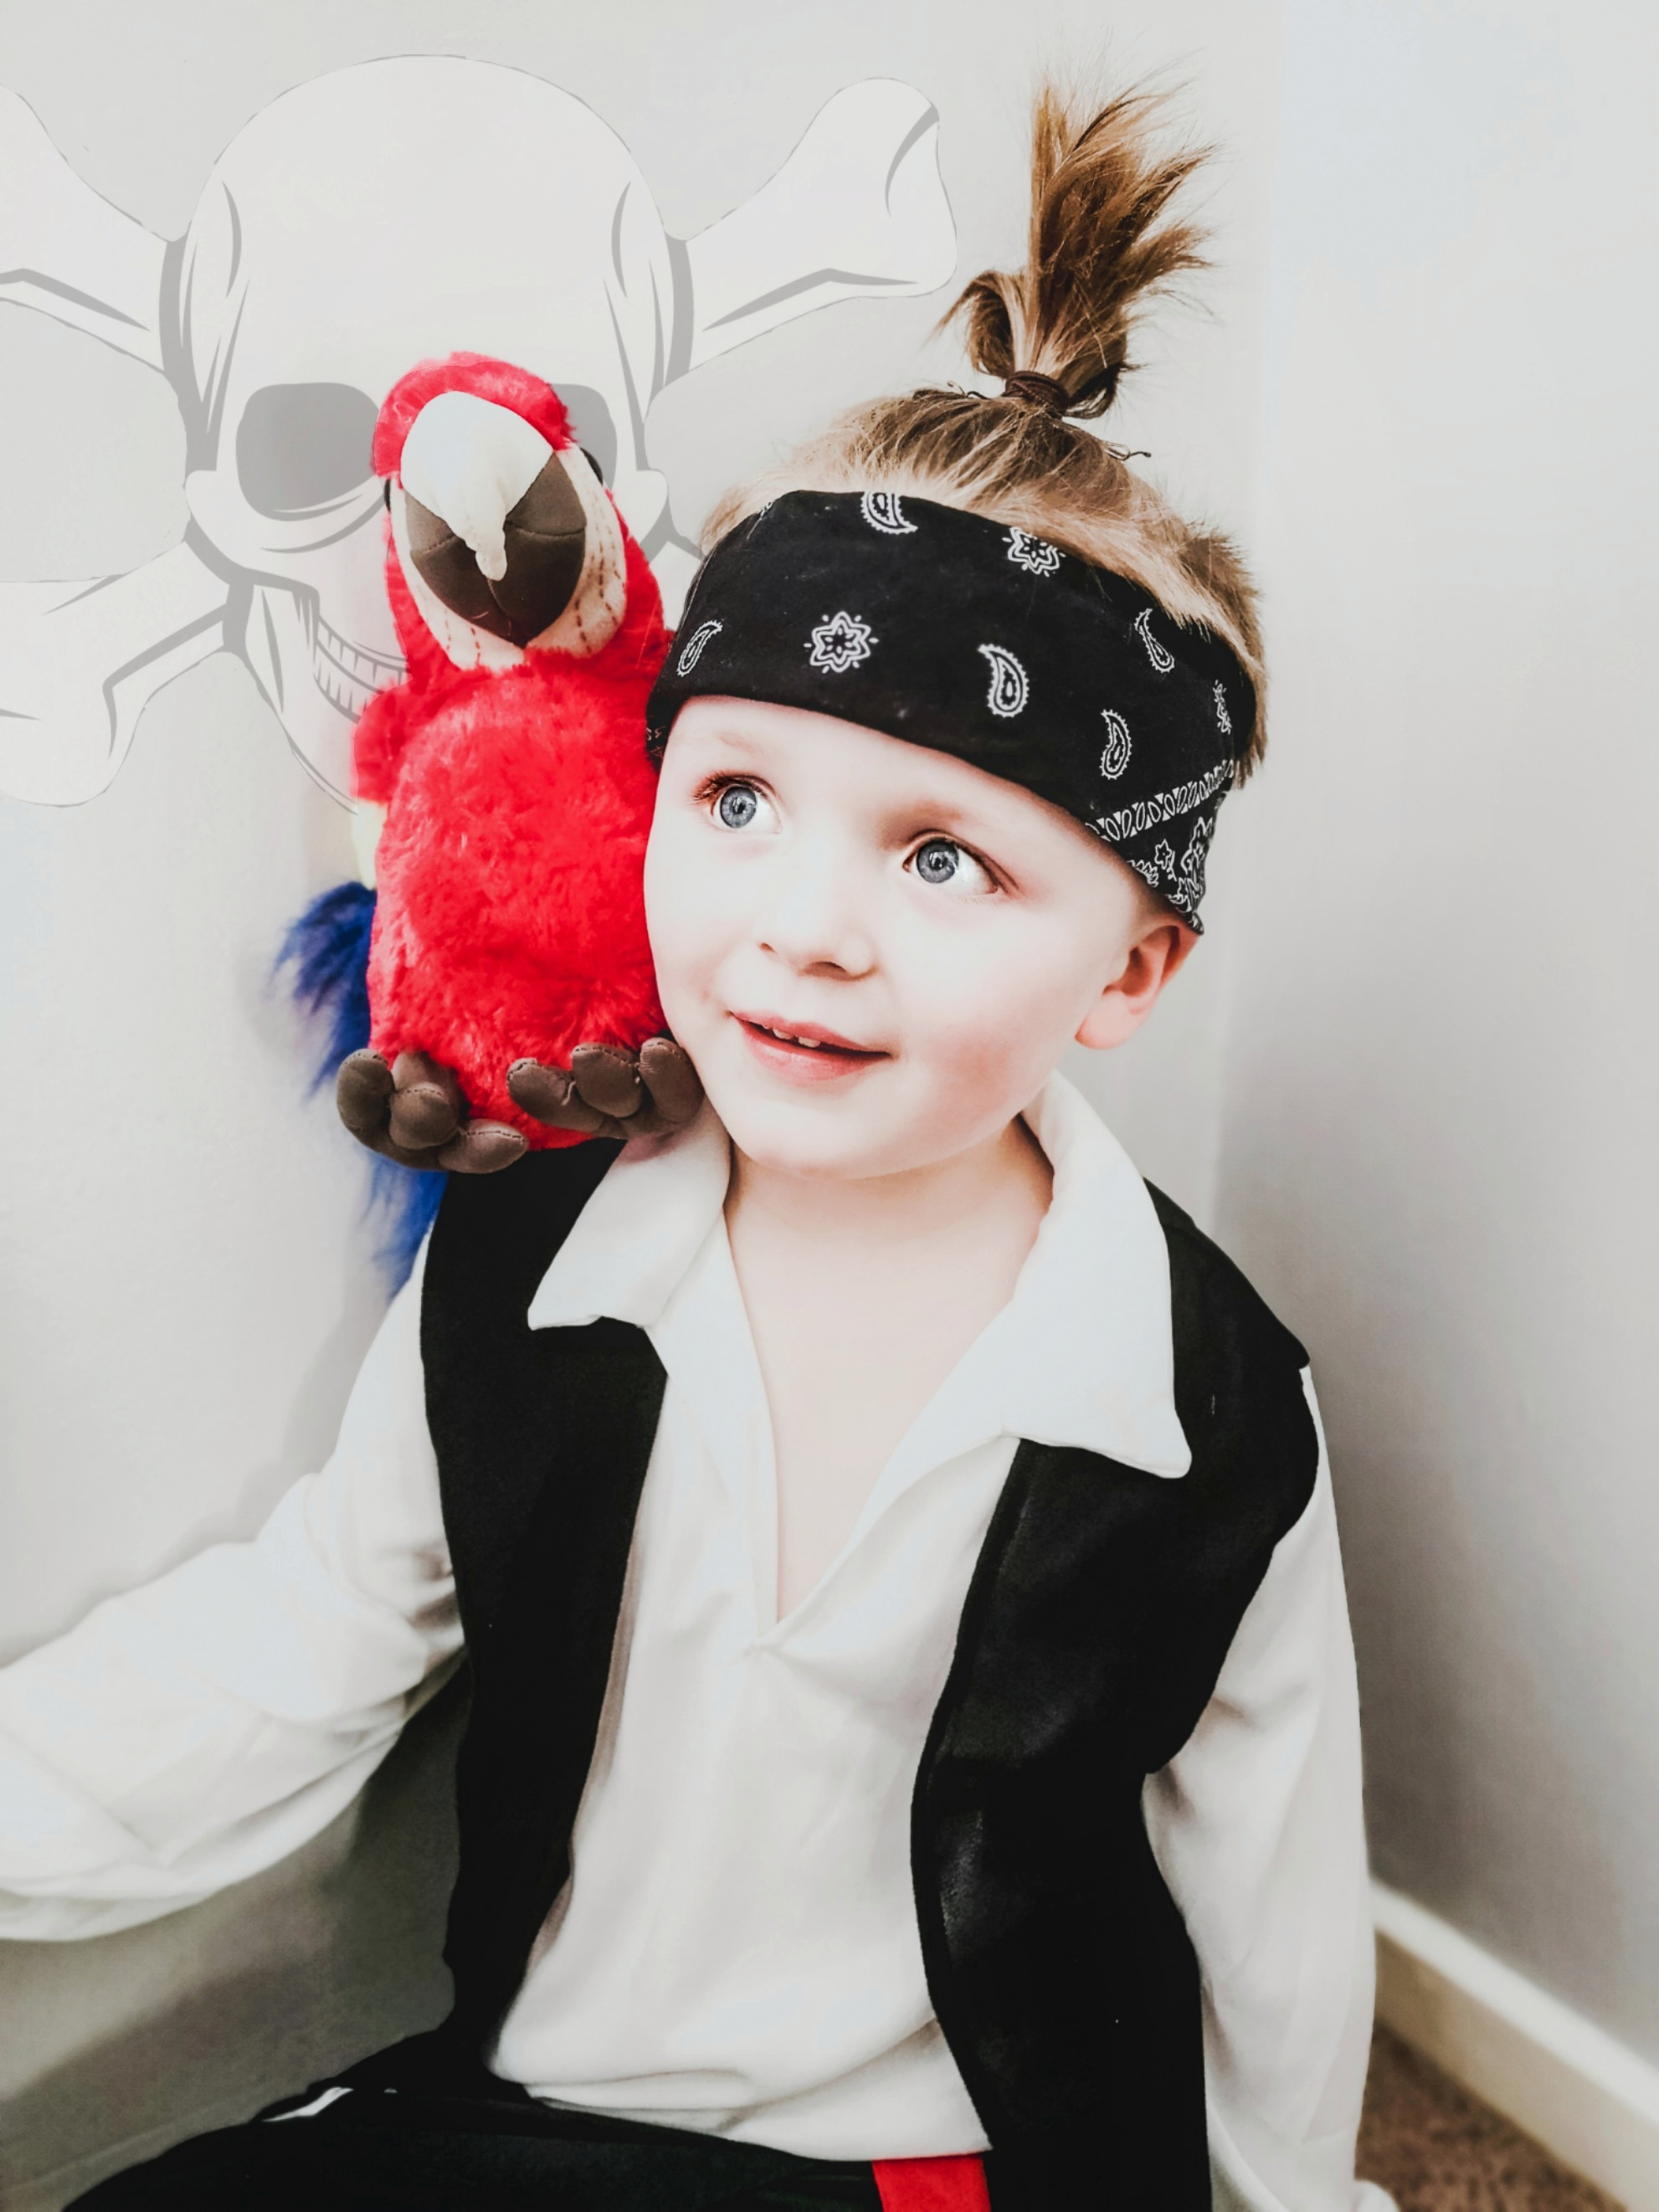 Droitwich Advertiser: Fletcher aged 5 as a pirate